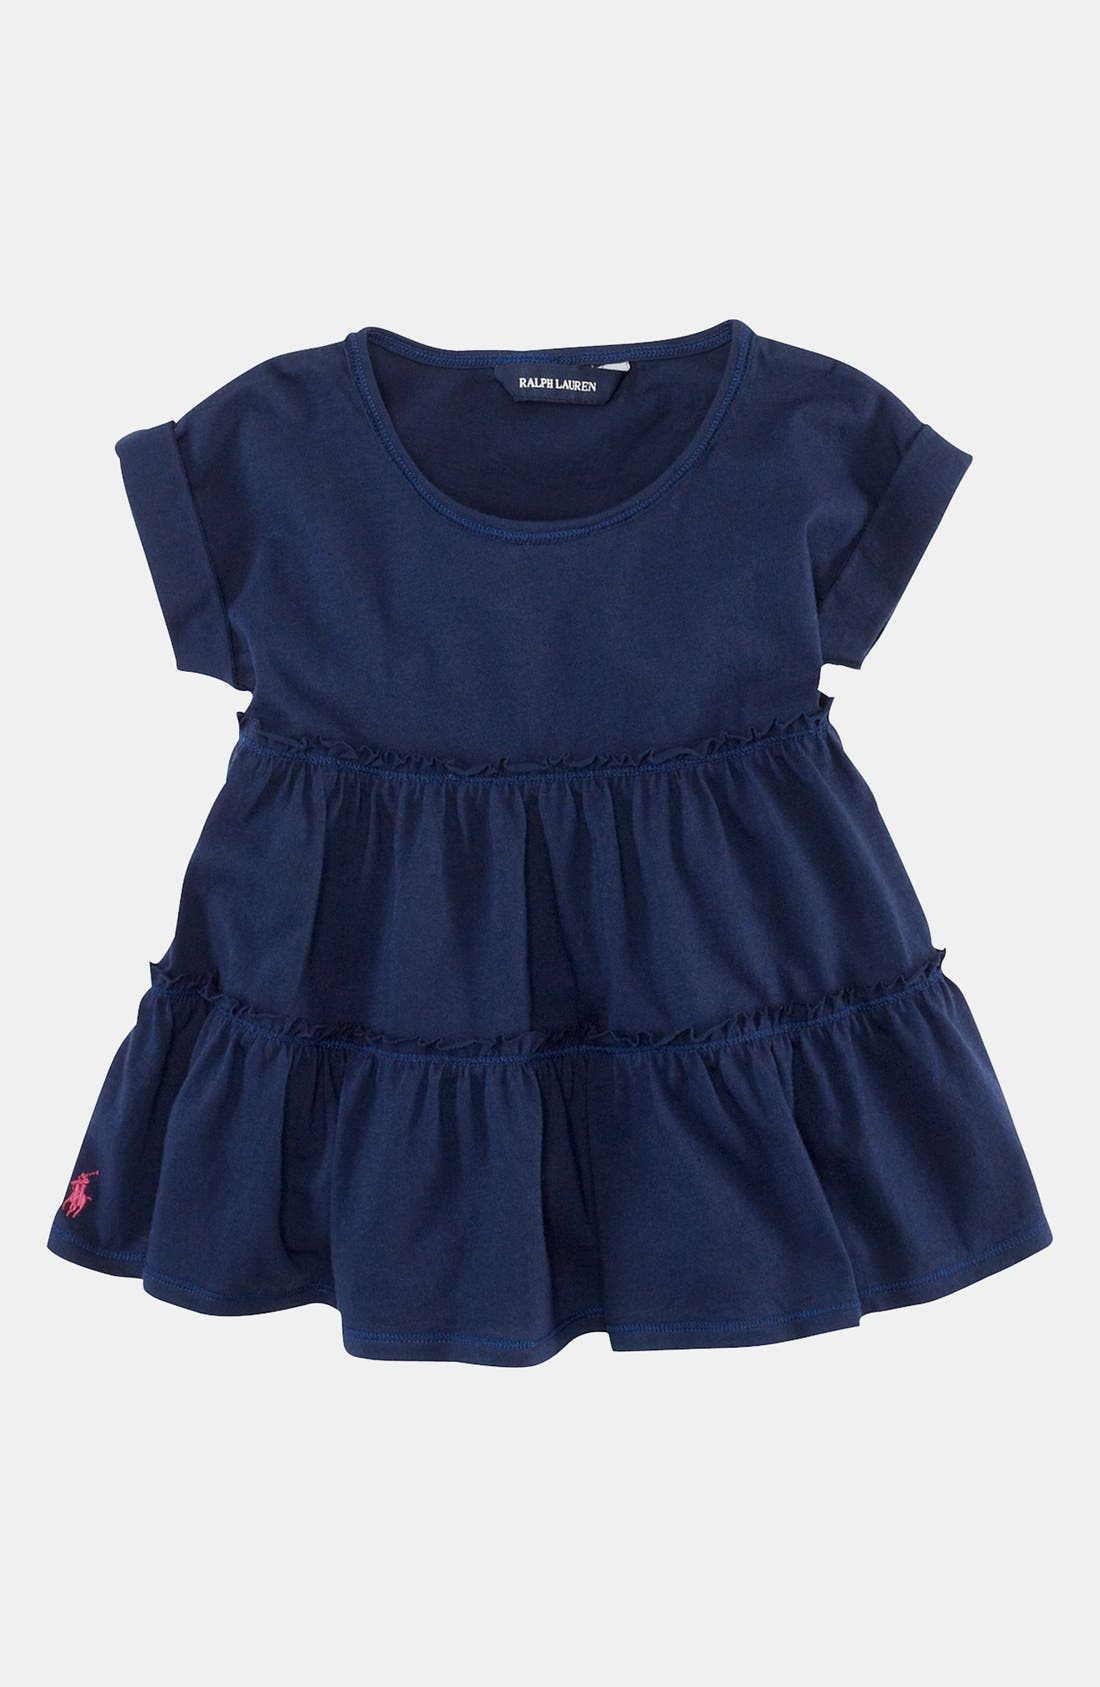 Alternate Image 1 Selected - Ralph Lauren Knit Top (Toddler)